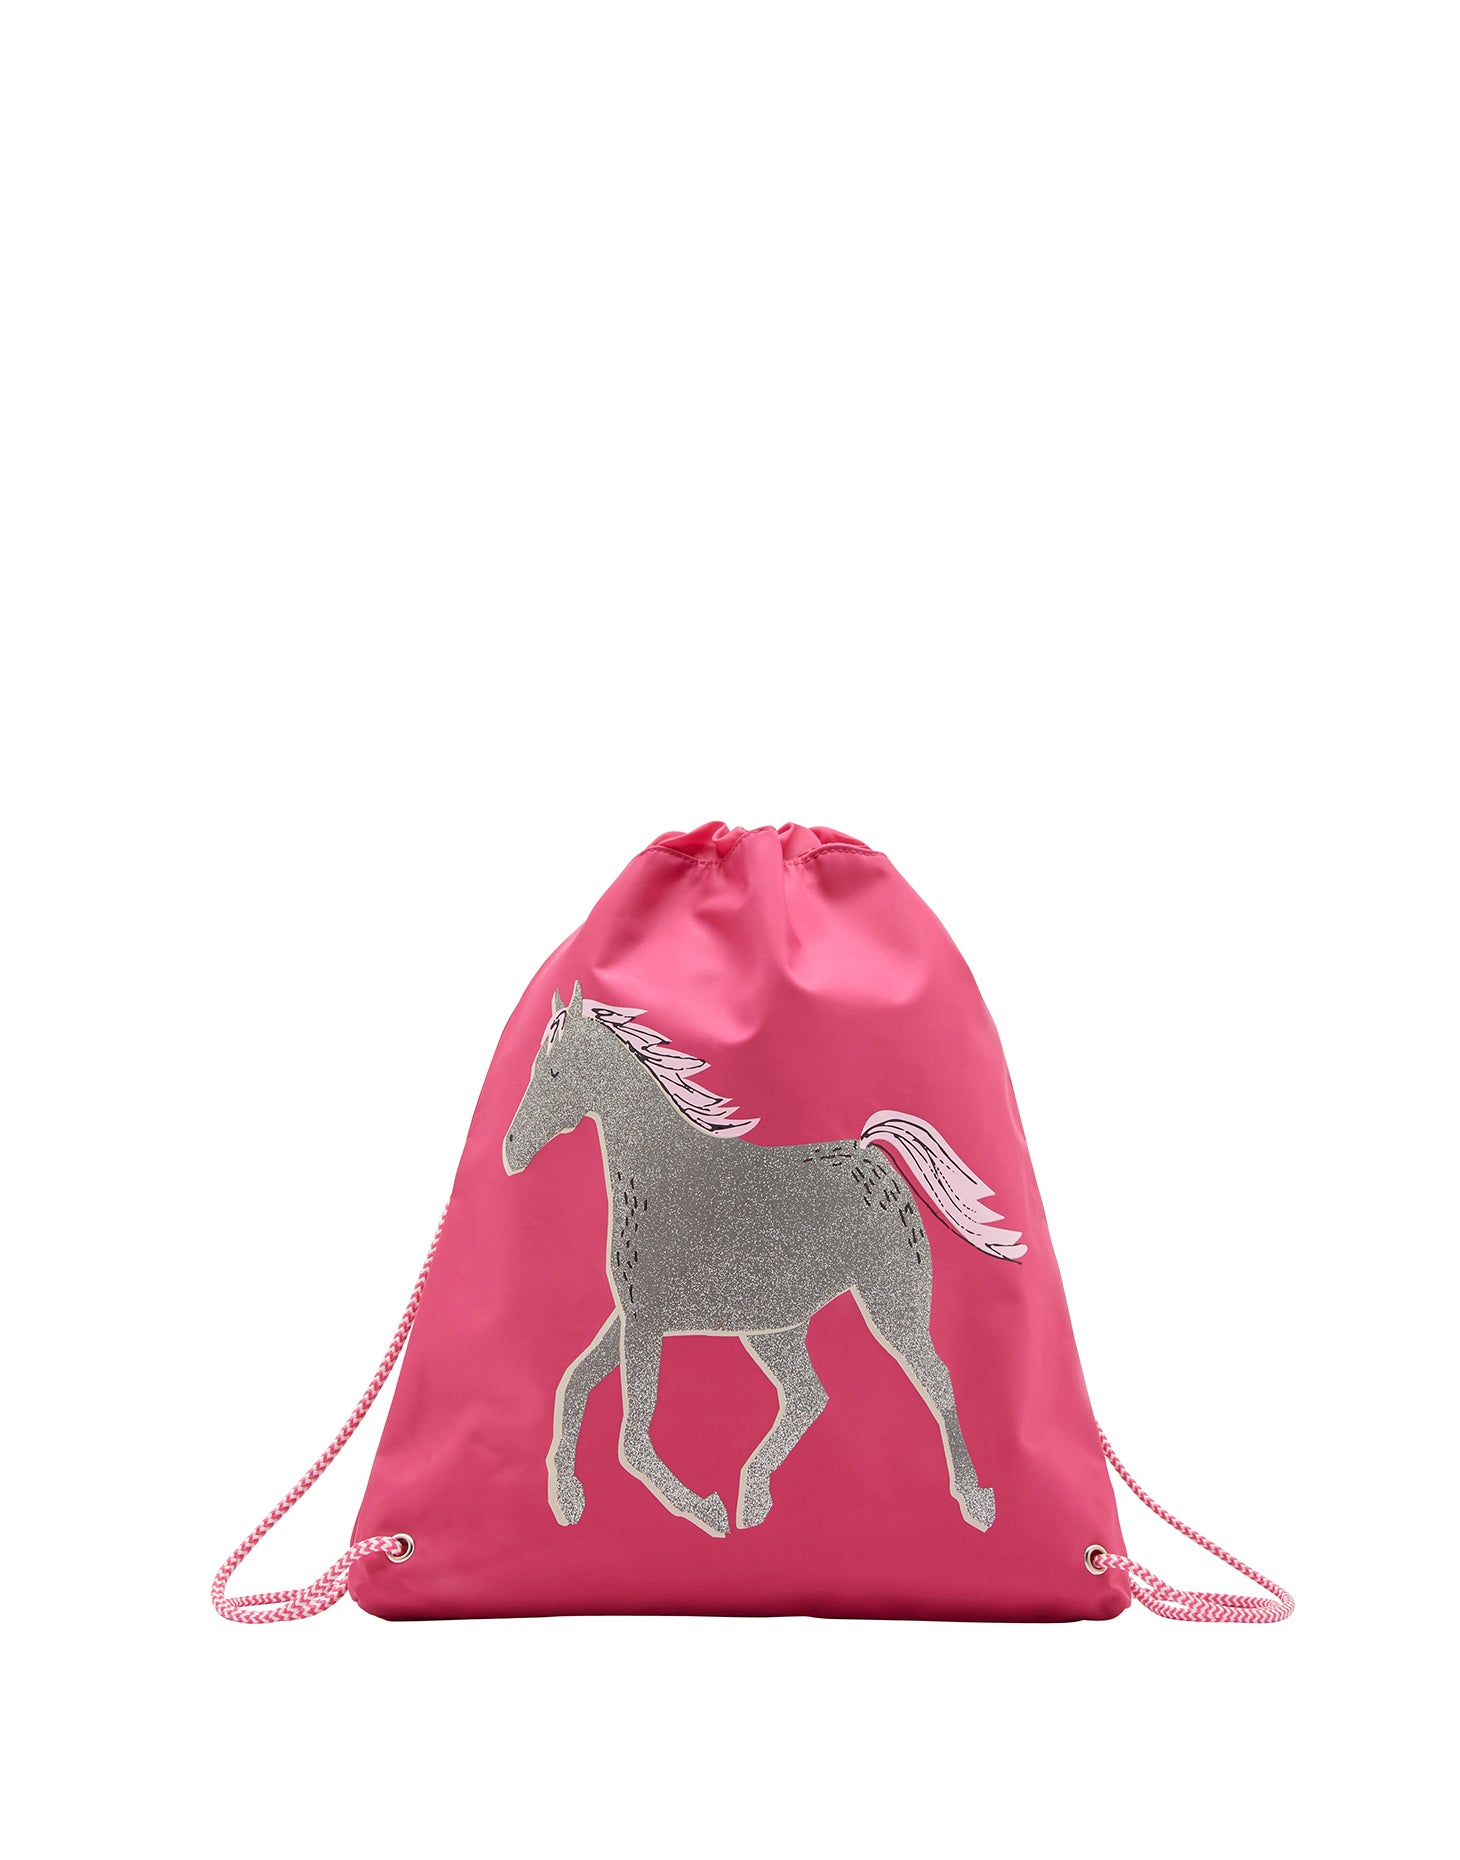 outlet store ce21f c2f69 Joules Kinder-Turnbeutel Pferd in pink